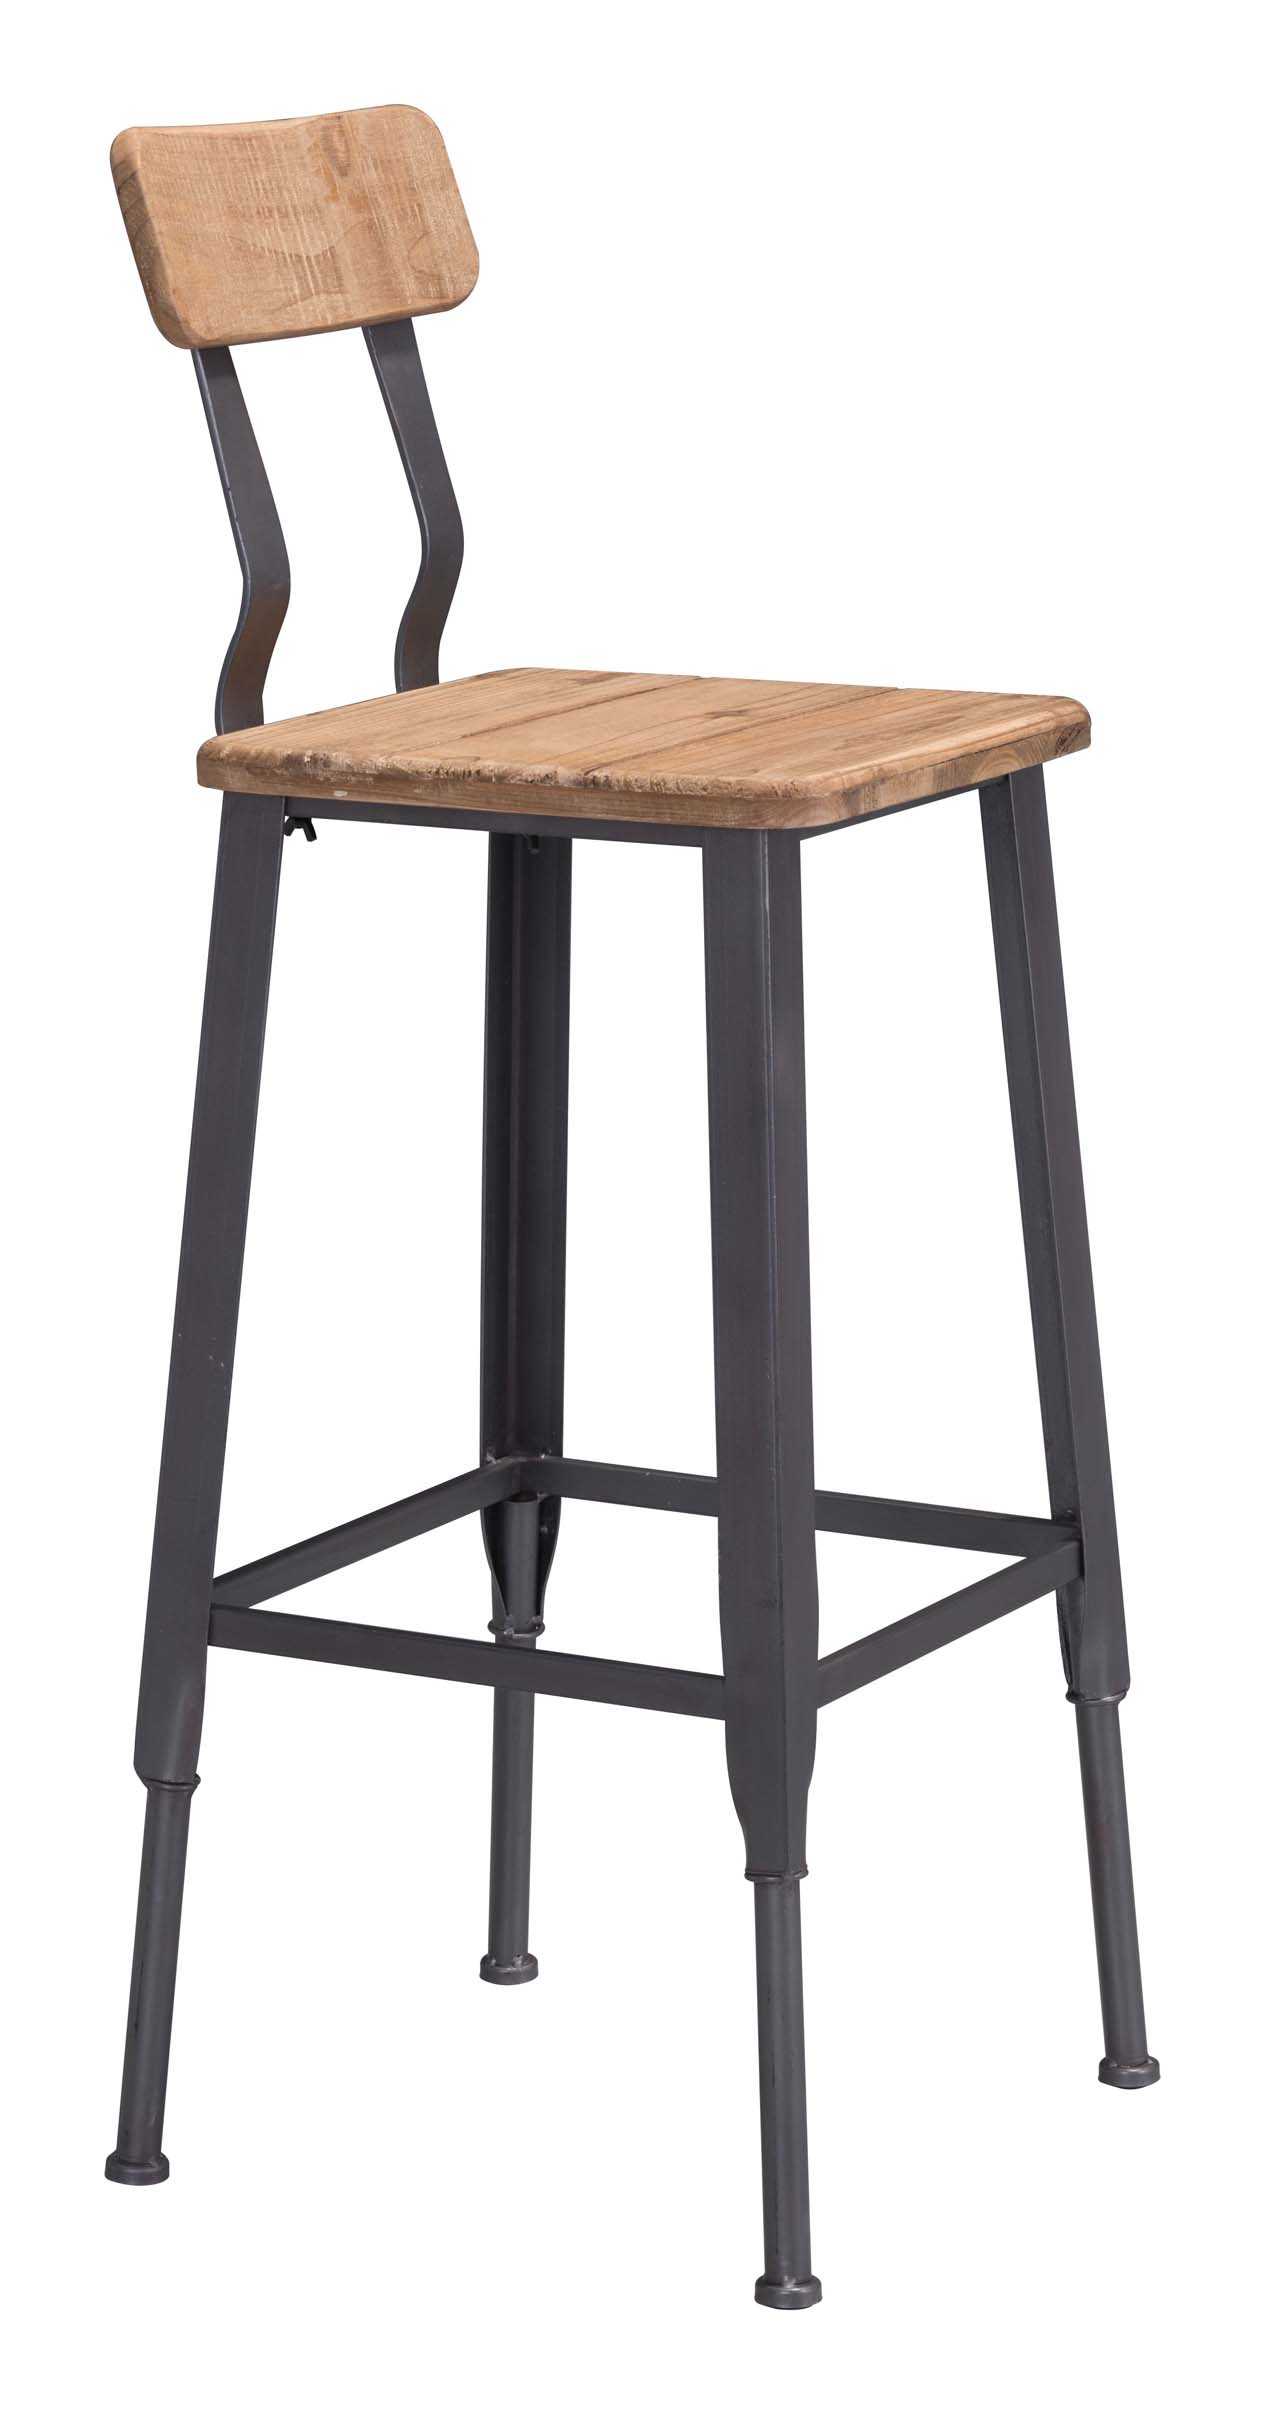 zuo-100421-clay-bar-chair-in-natural-industrial-gray.jpg